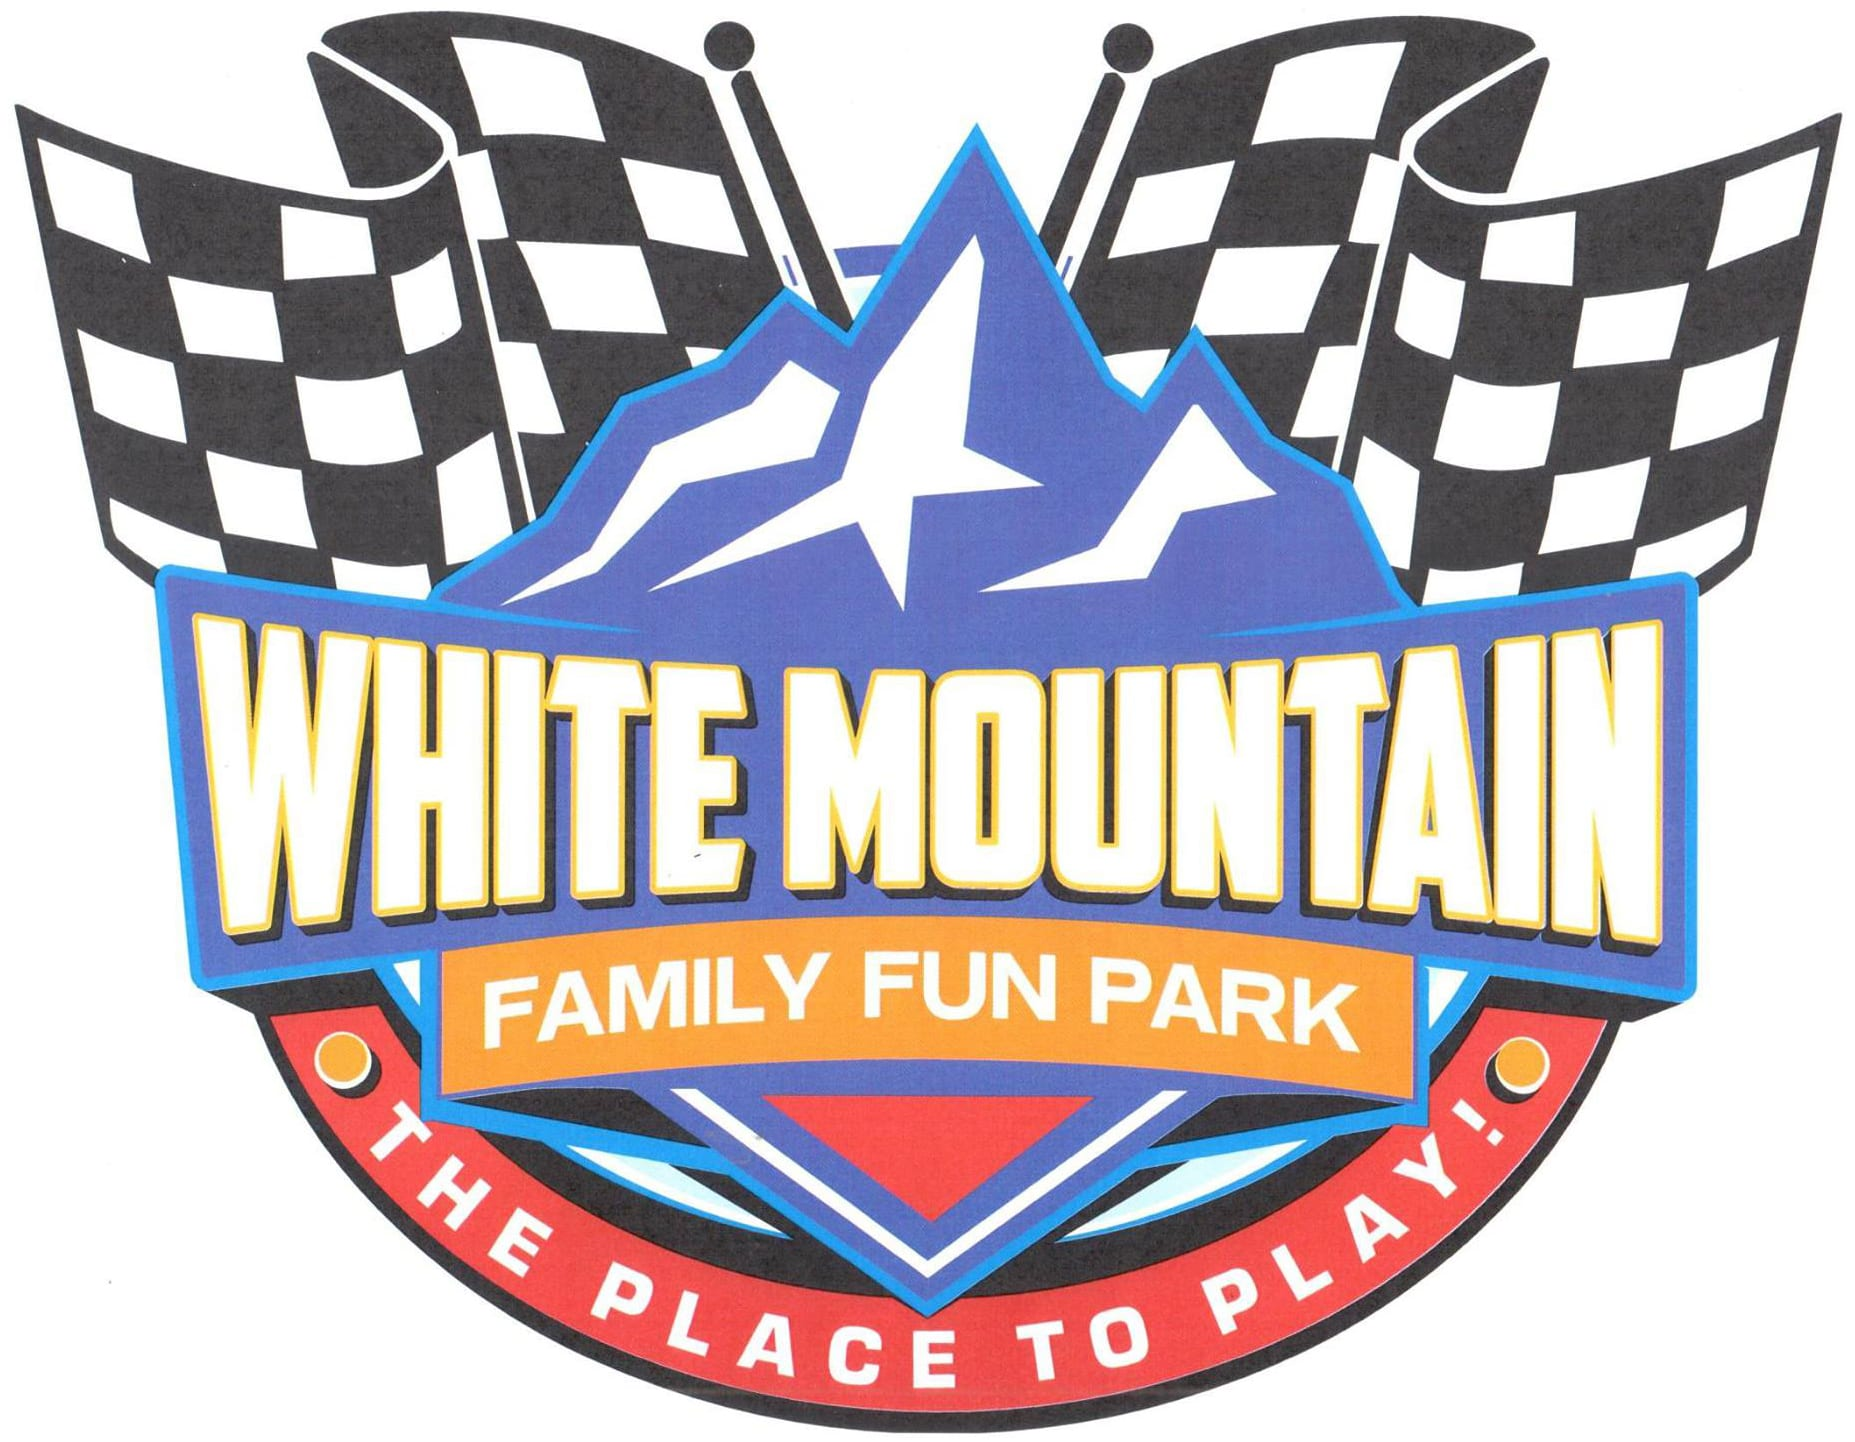 White Mountain Family Fun Park logo (image)